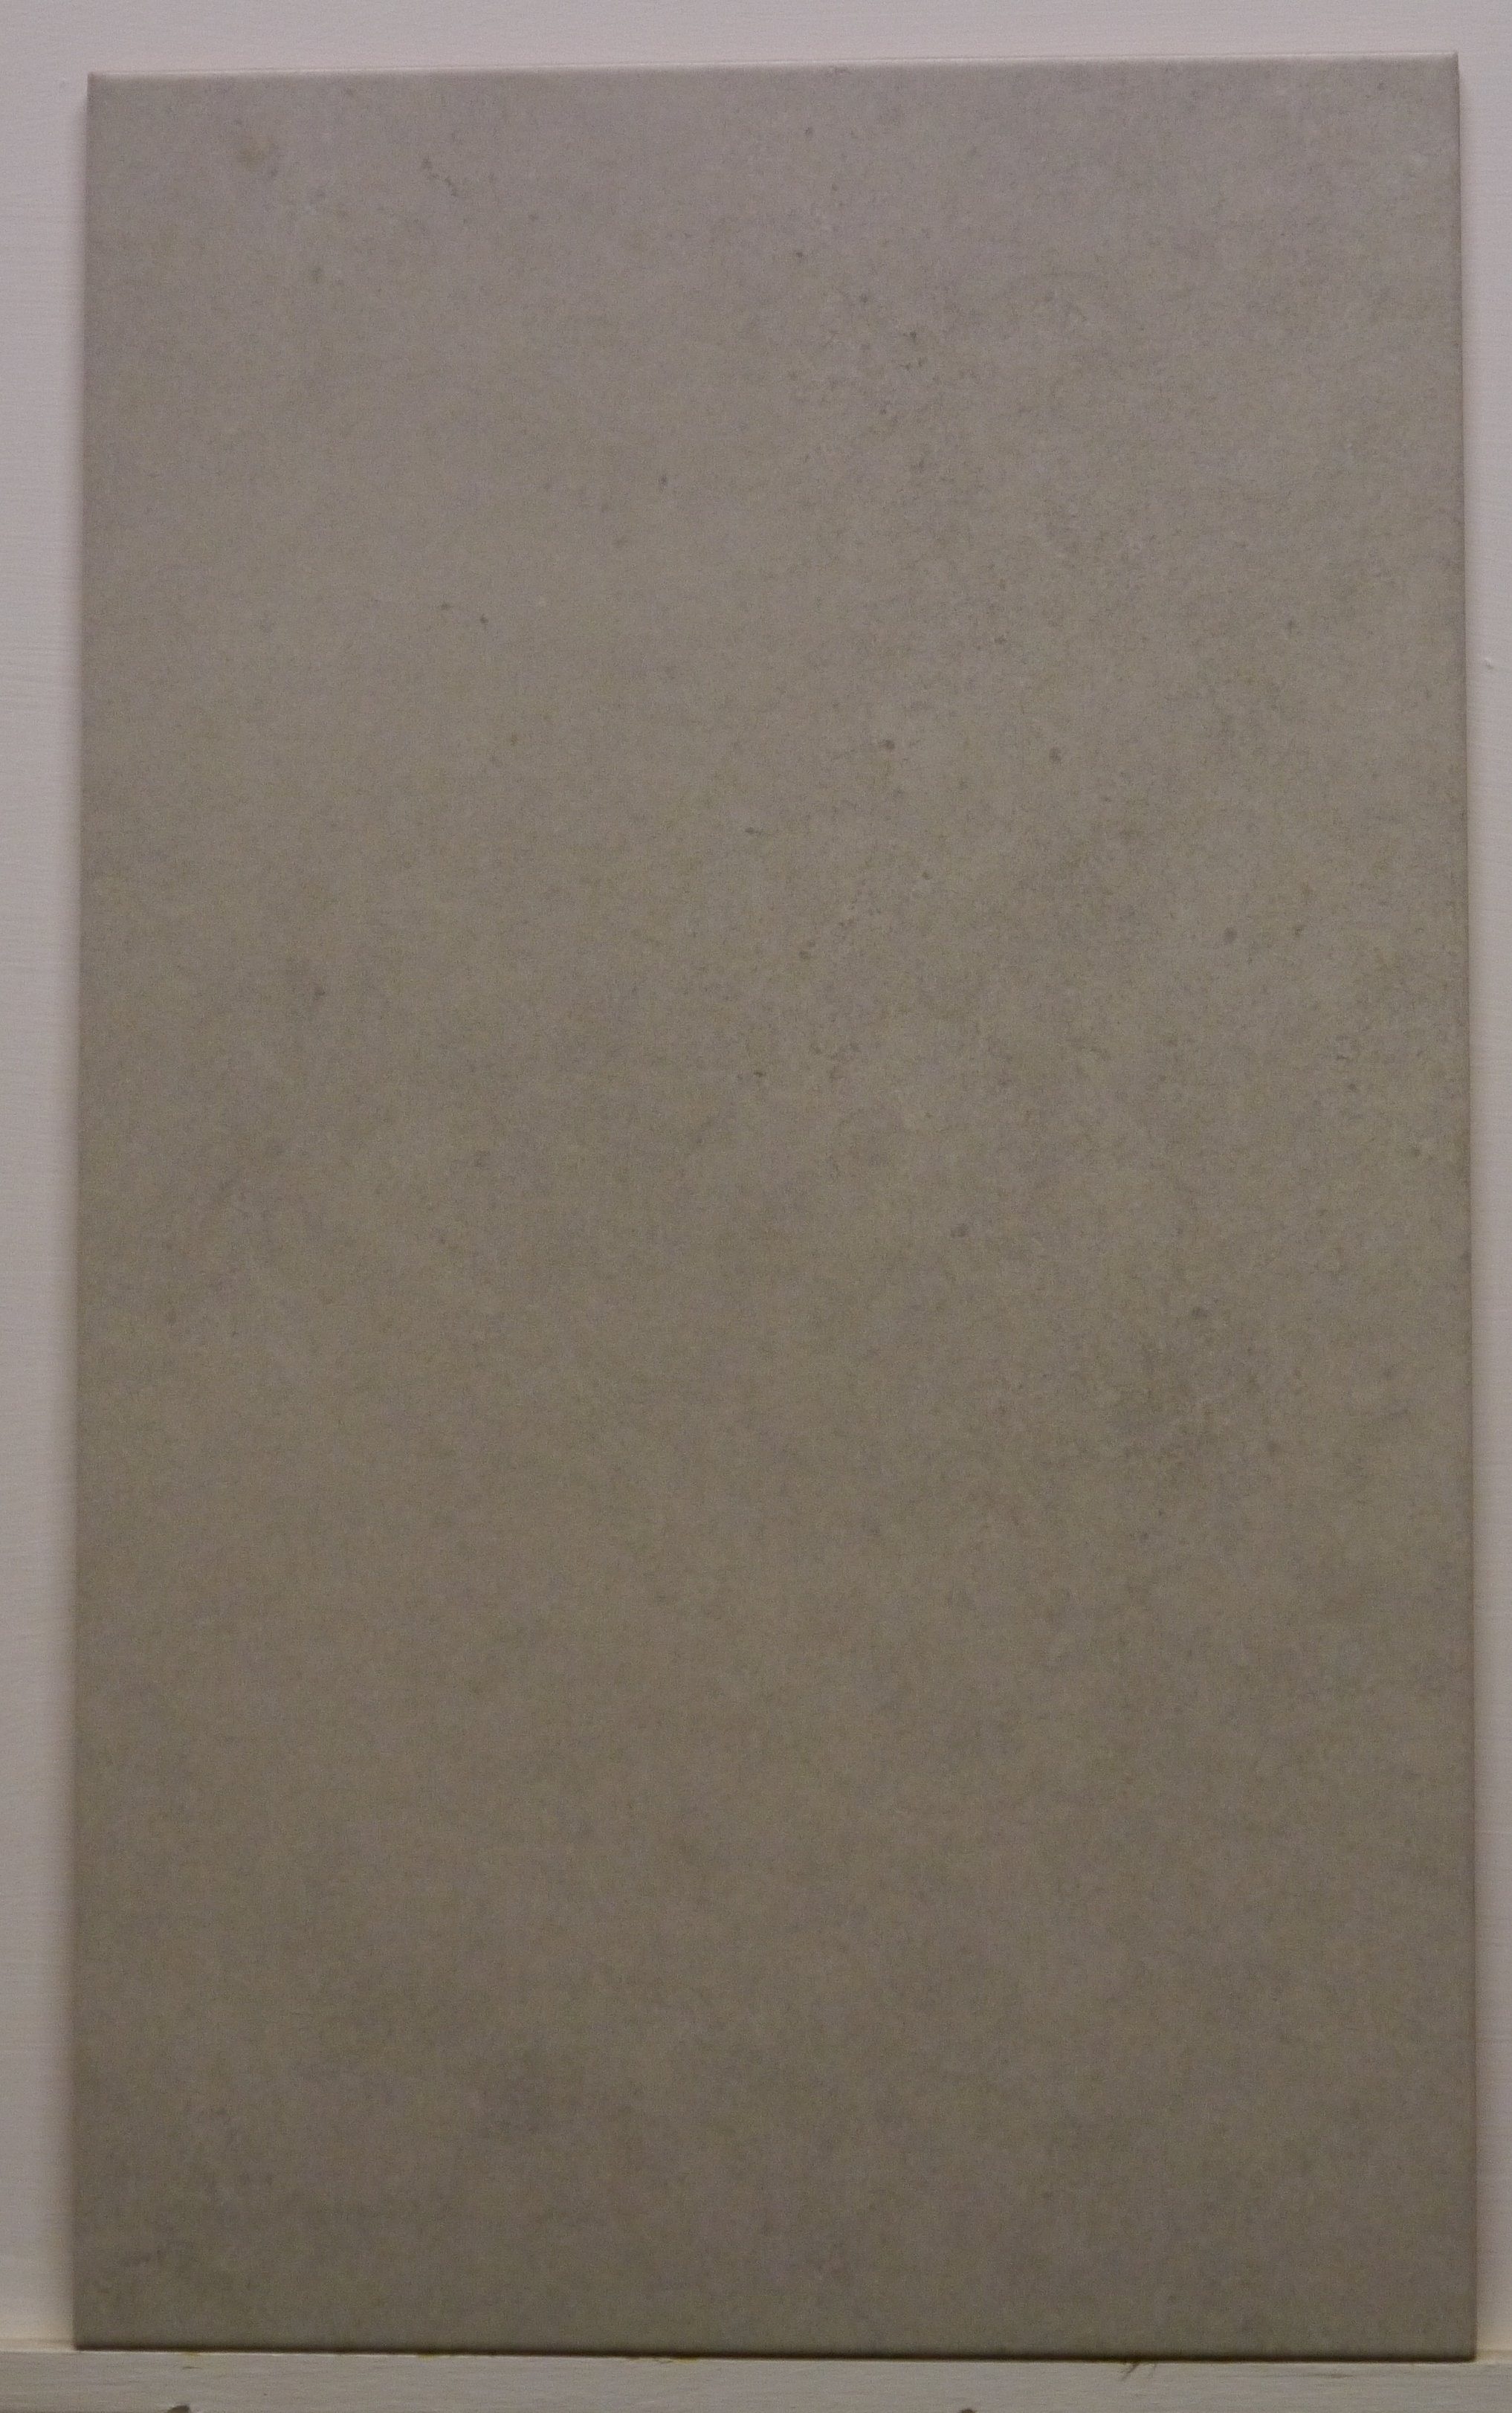 M9050 ceramic decor wall tile 333 x 550 taupe the tile for Ceramic mural wall tiles